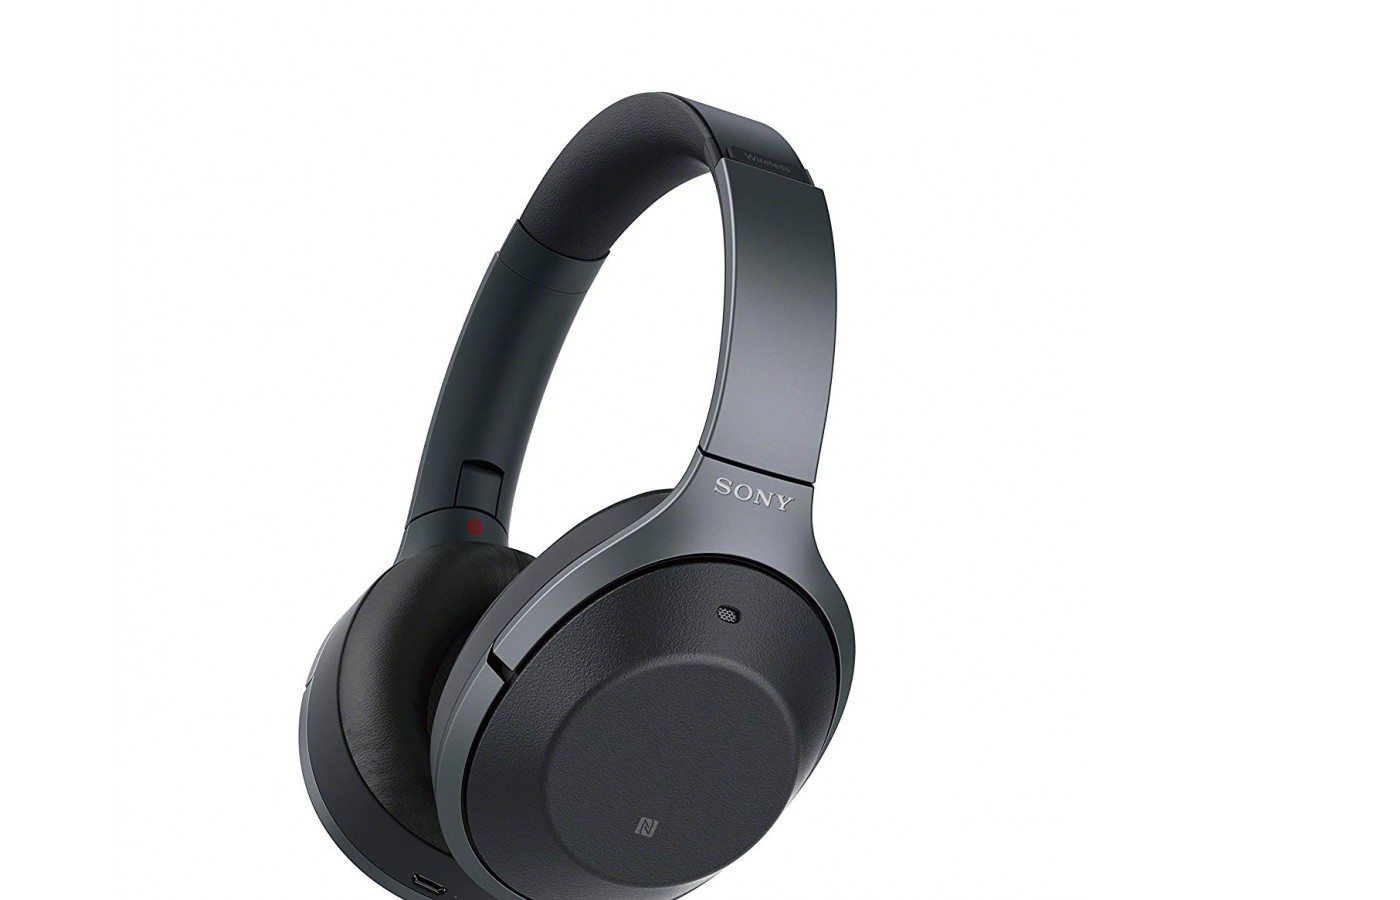 You want good sound quality, you want a comfortable fit, and in the case of noise cancellation headphones, you do not want to hear anything except your music.